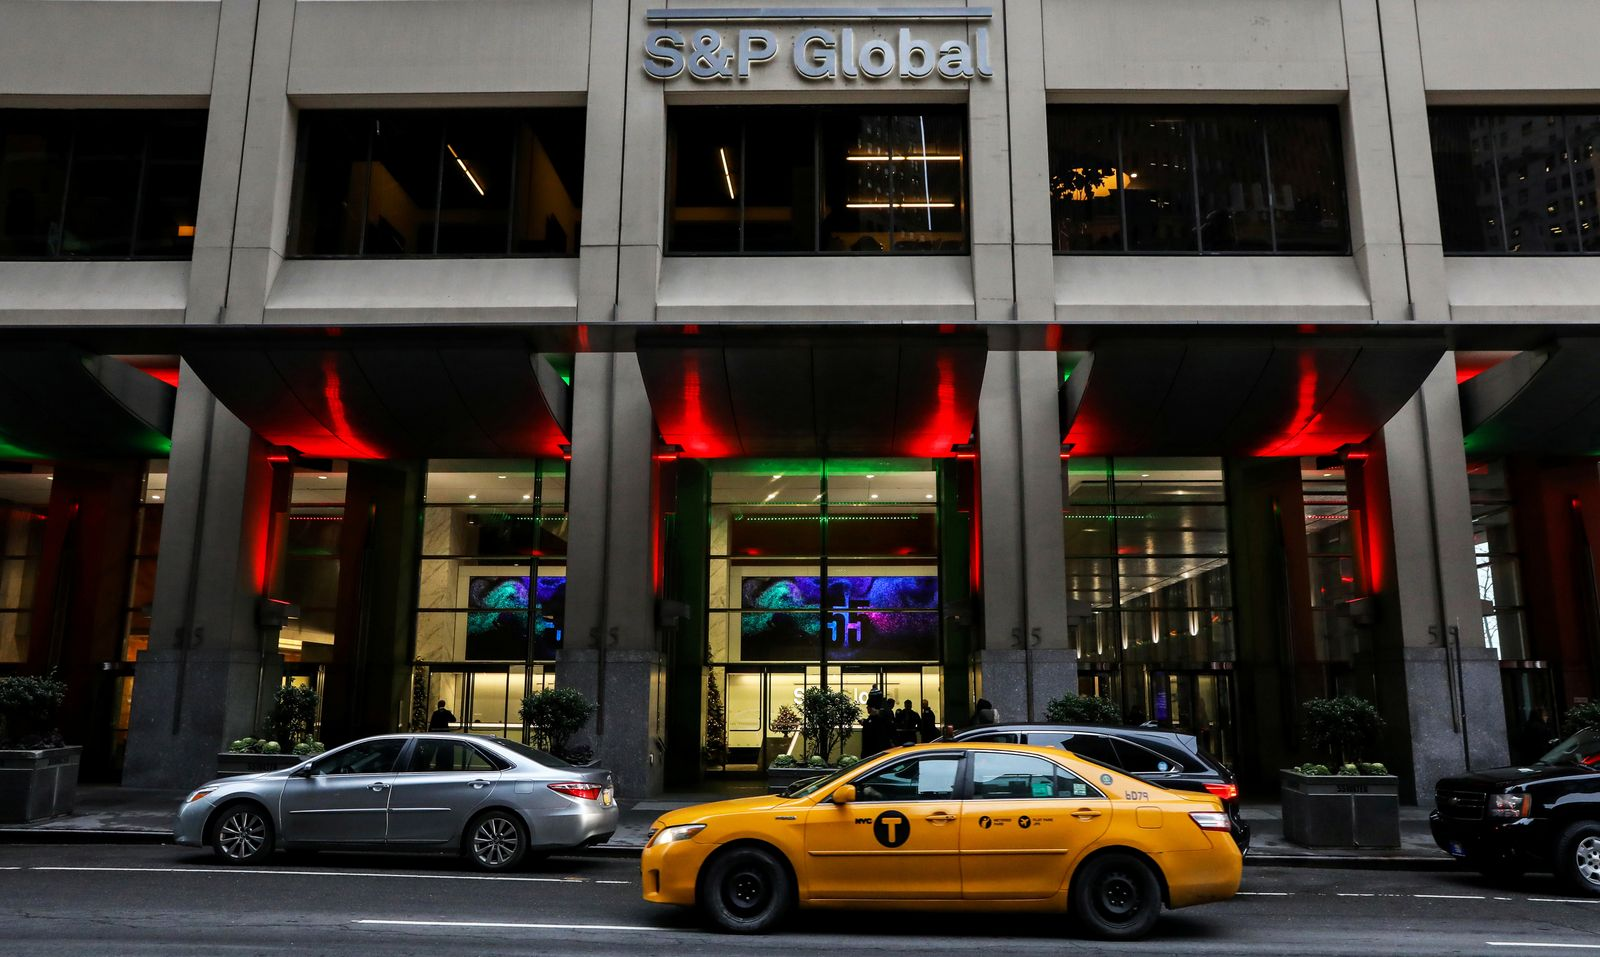 The S&P Global logo is displayed on its offices in the financial district in New York